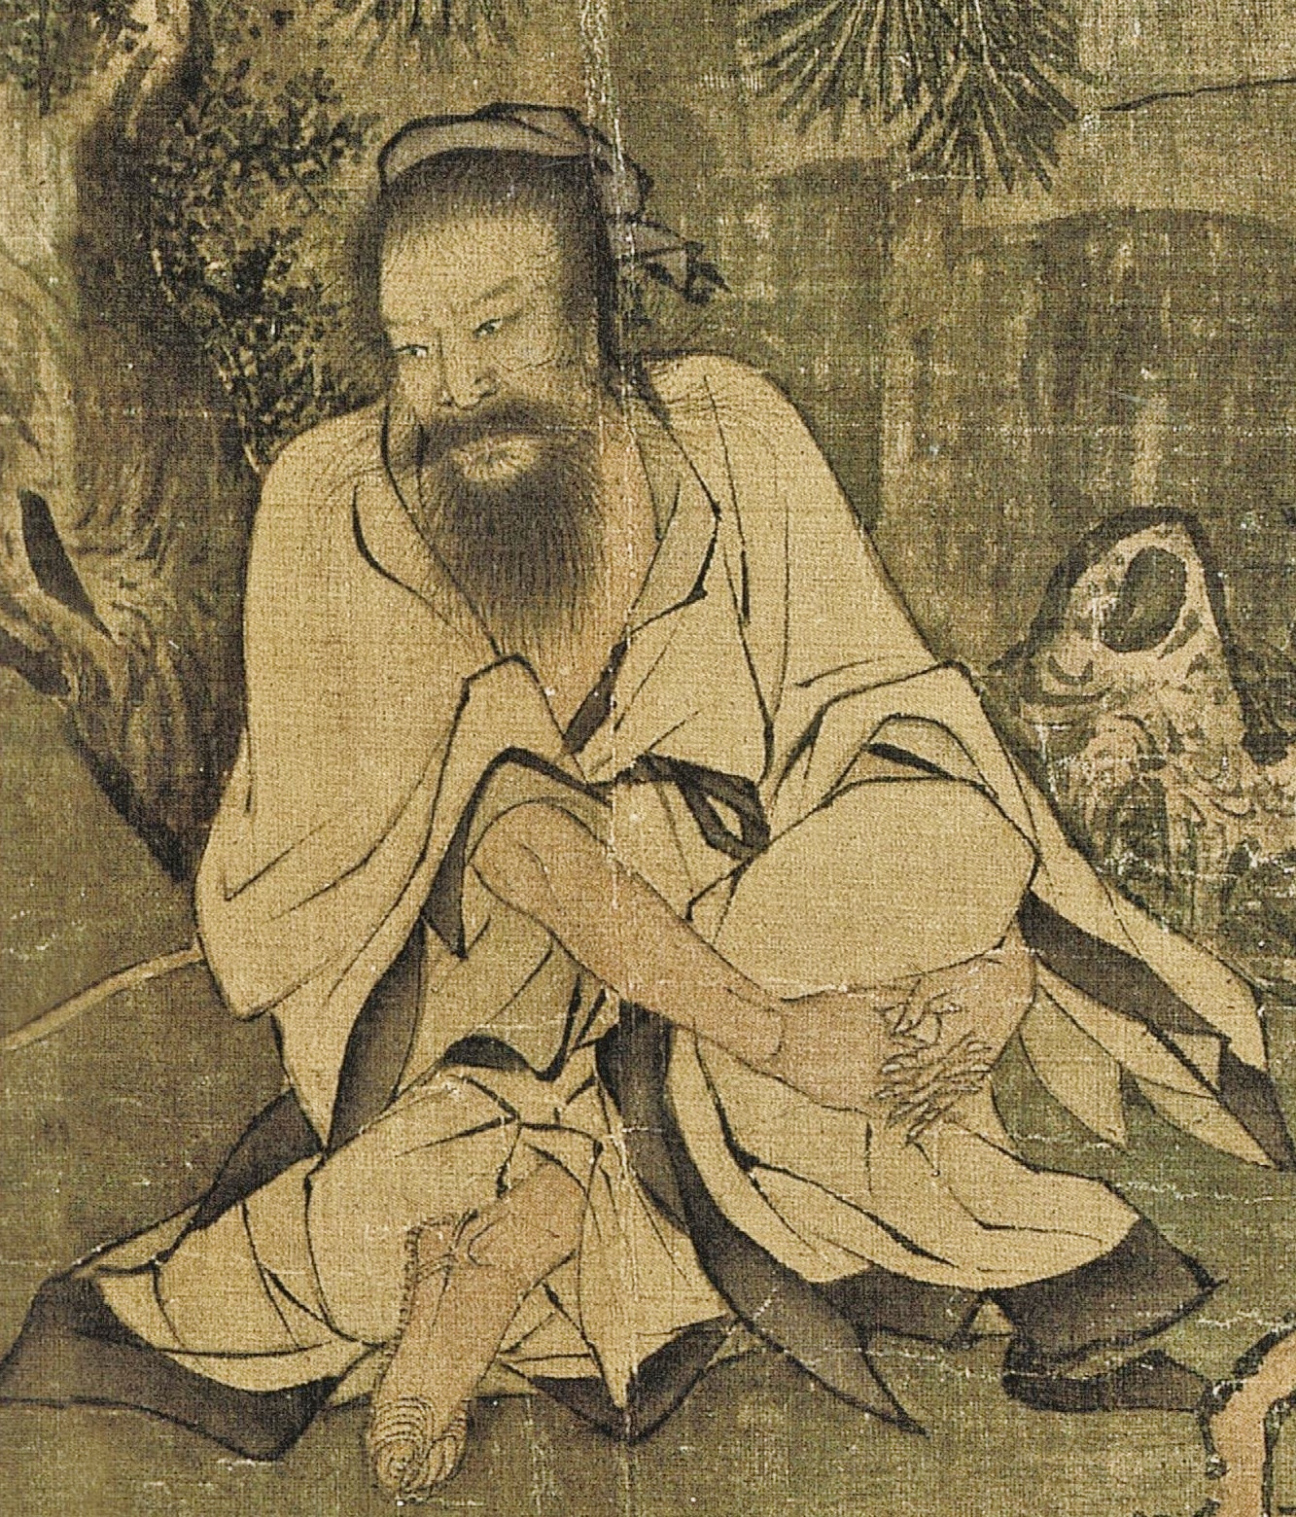 The other brother crosses his legs and listens very intently. (Image: Secret China)